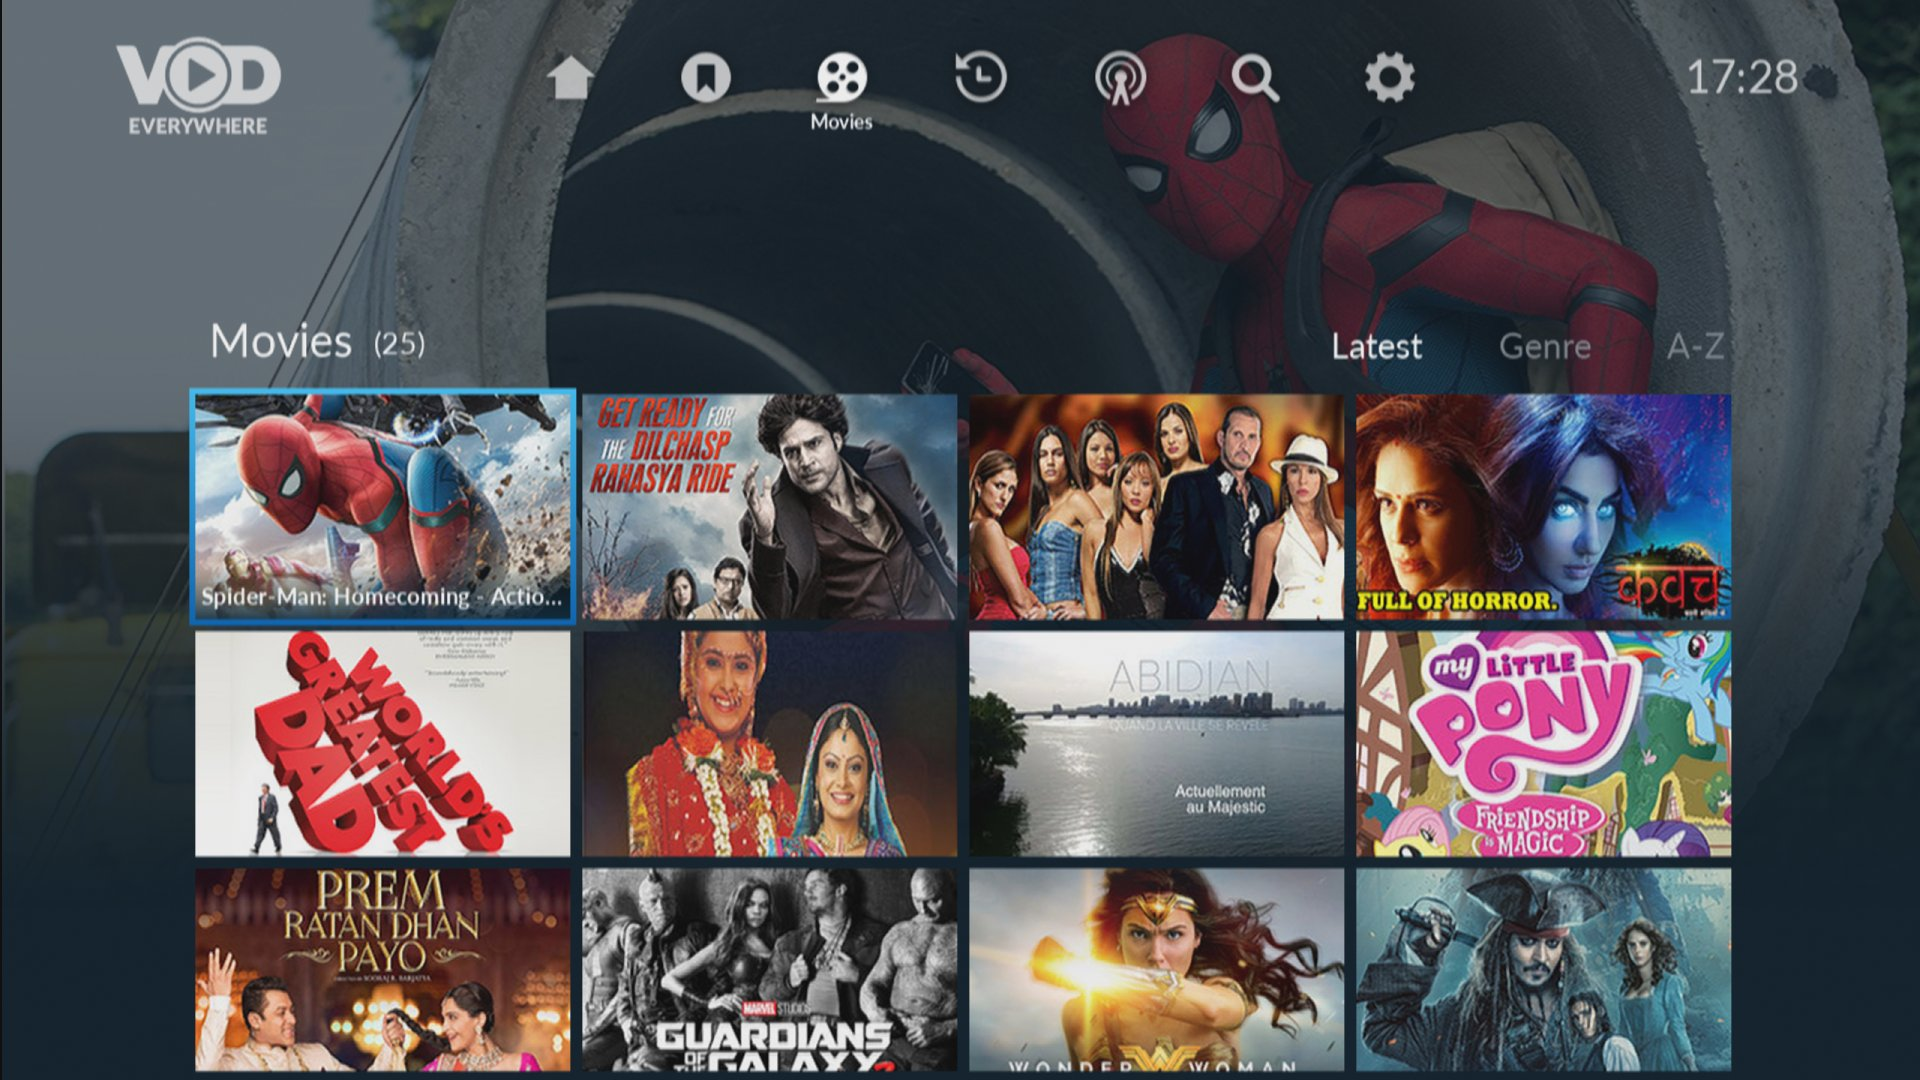 VOD Everywhere - Grid EPG